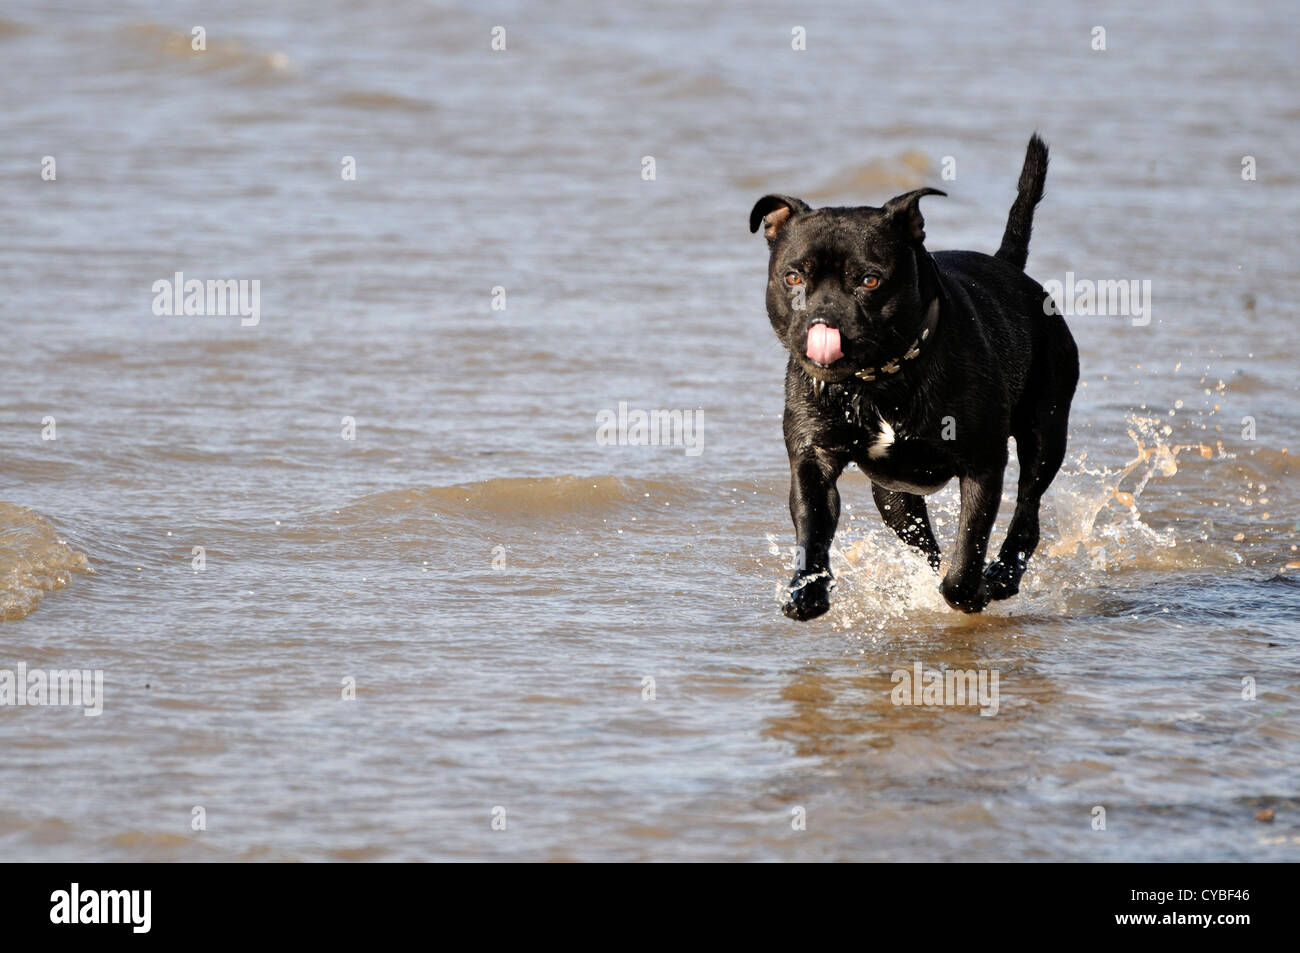 Black Staffordshire Bull Terrier running at waters edge towards camera with pink tongue curled back to nose - Stock Image